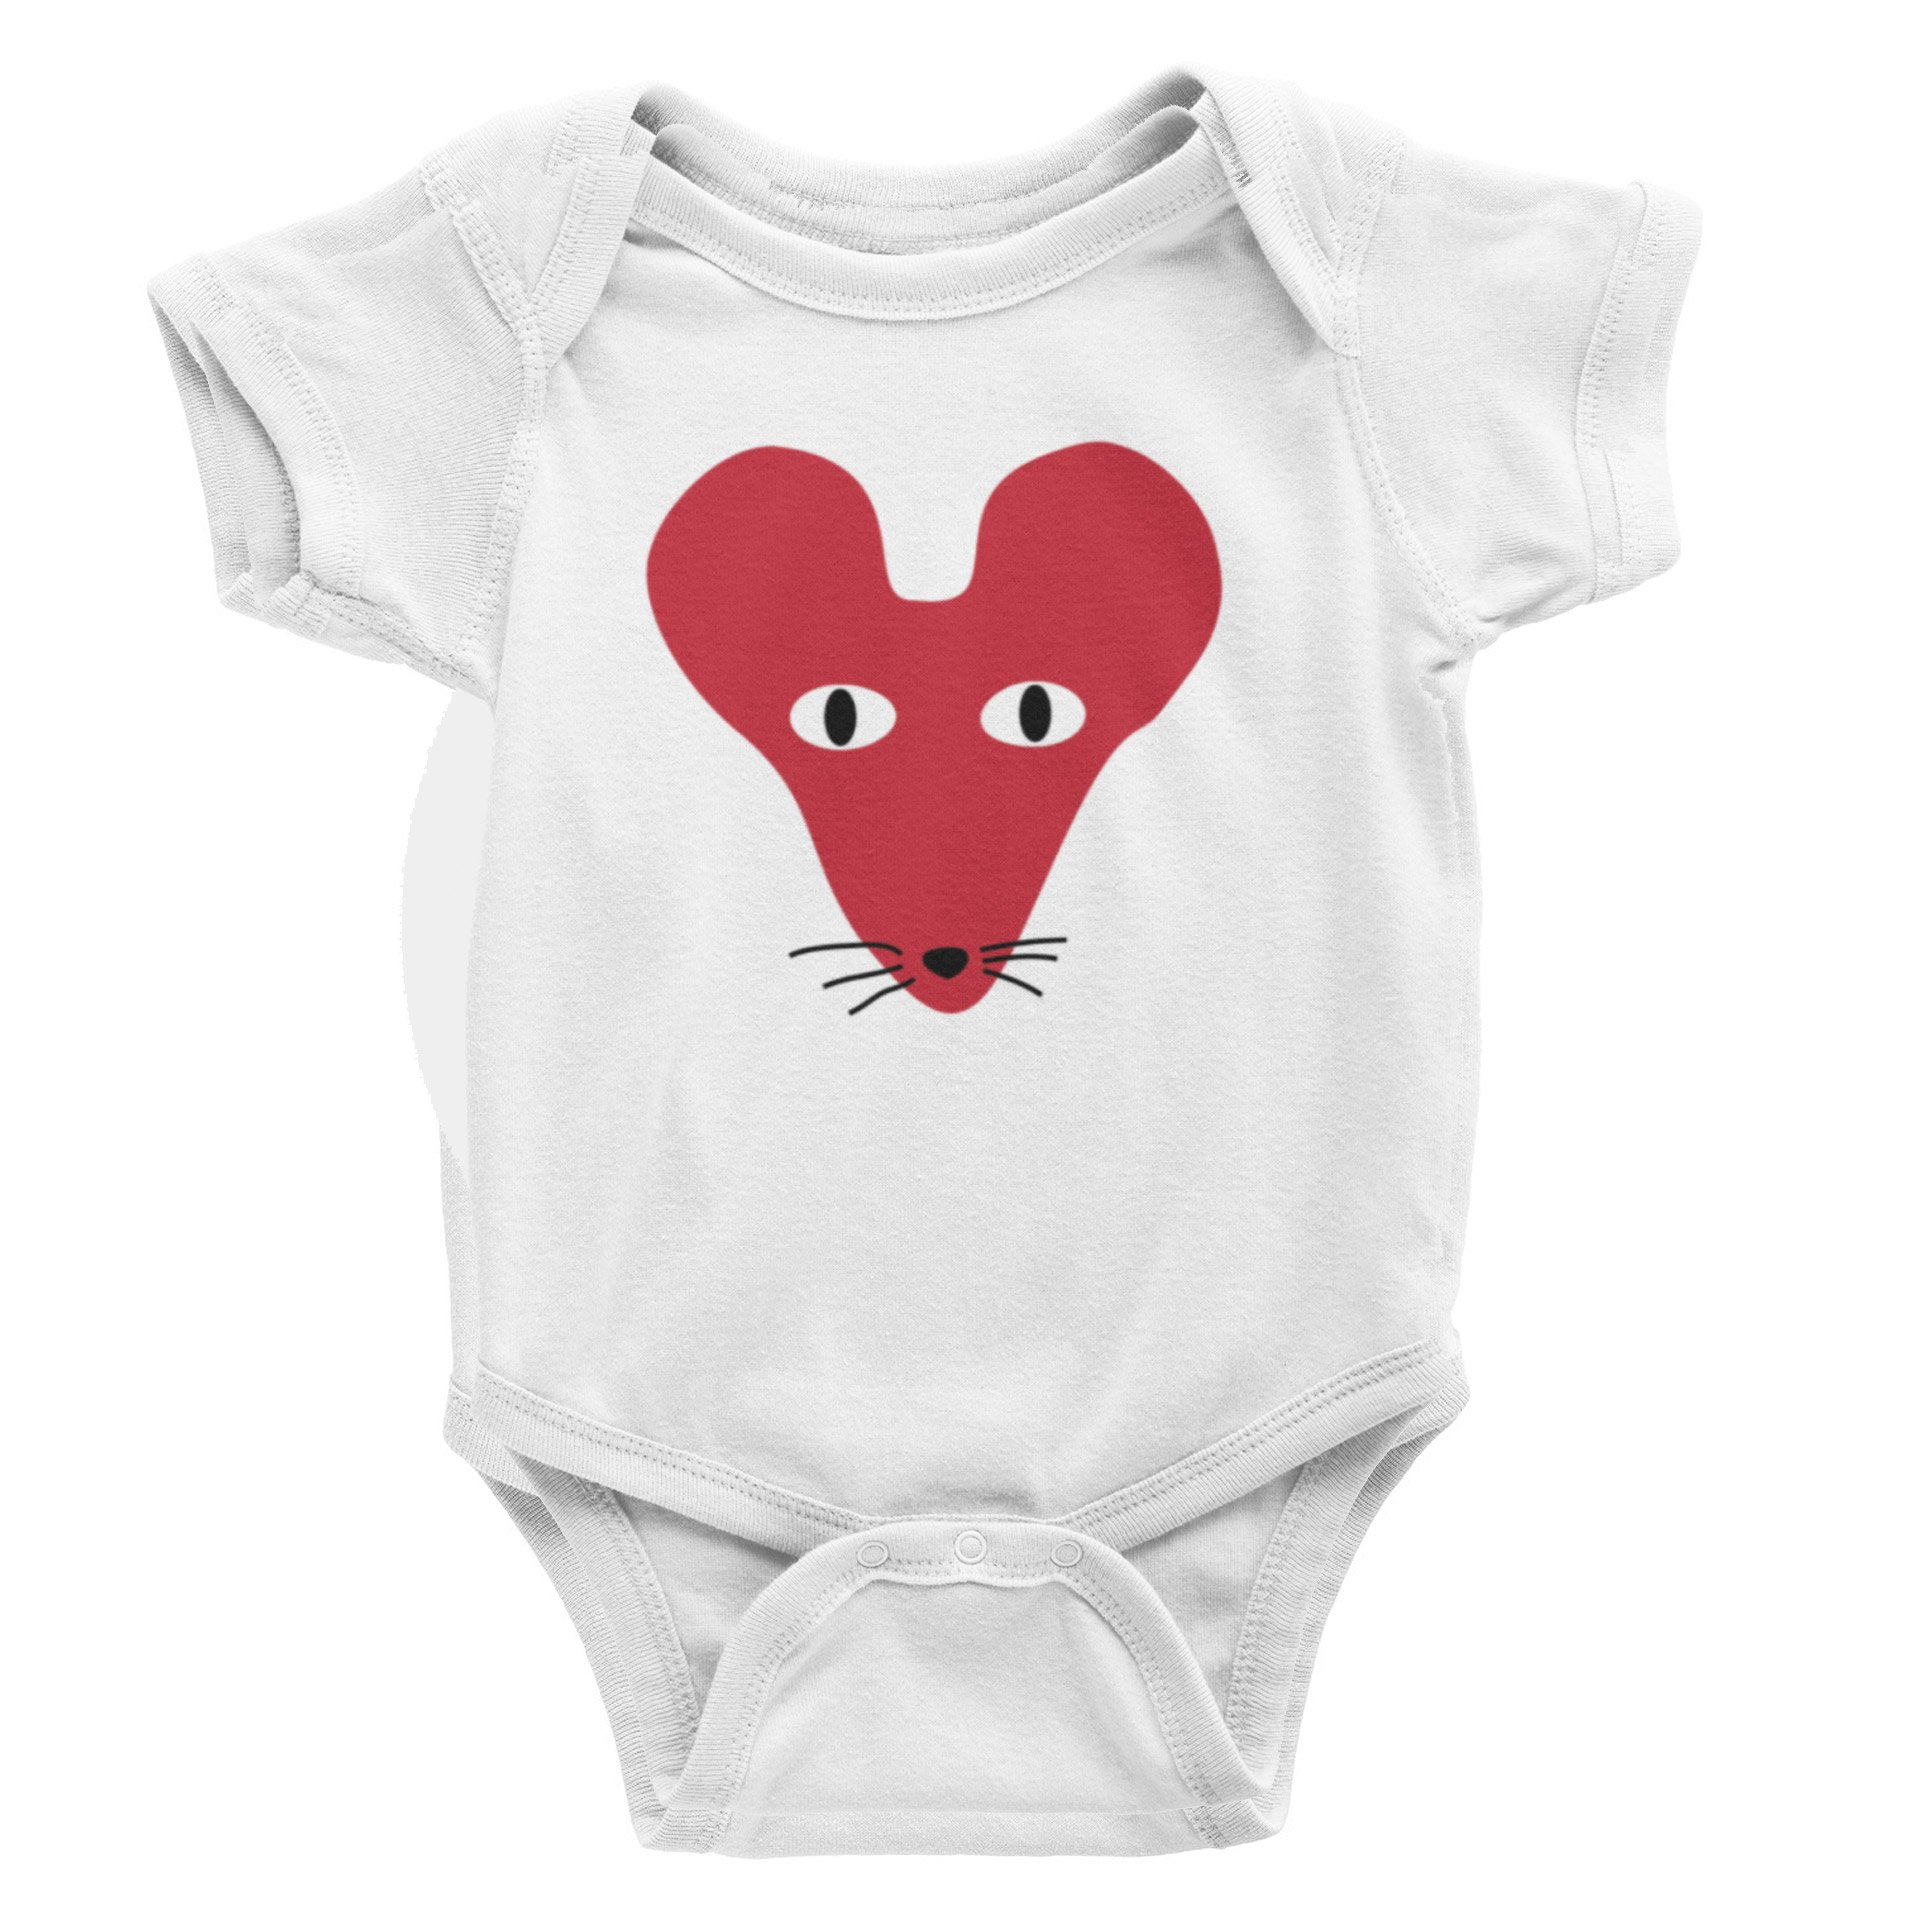 Red Faced Rat S-Sleeve Romper